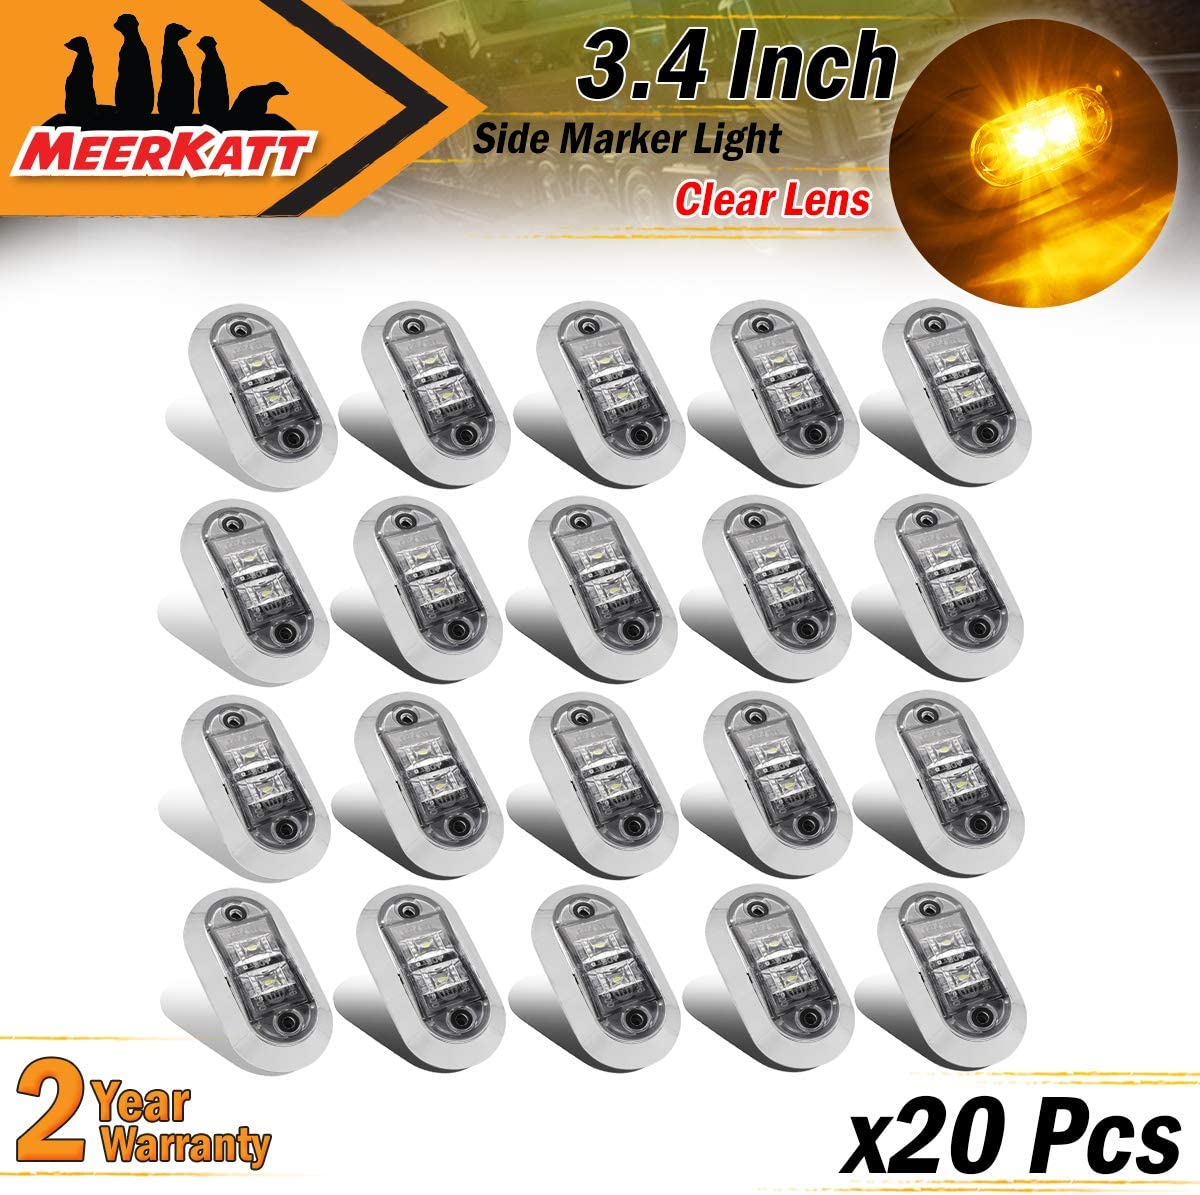 2.5 Inch Oval Clear Lens 10 Amber /& 10 Red Oval 2 LEDs Surface Mount SMD Extra Bright Side Marker Clearance Lights Trailer Jeep Van Truck SUV Bus RV w//Chrome 10-30V DC LM-CHS Pack of 20 Meerkatt